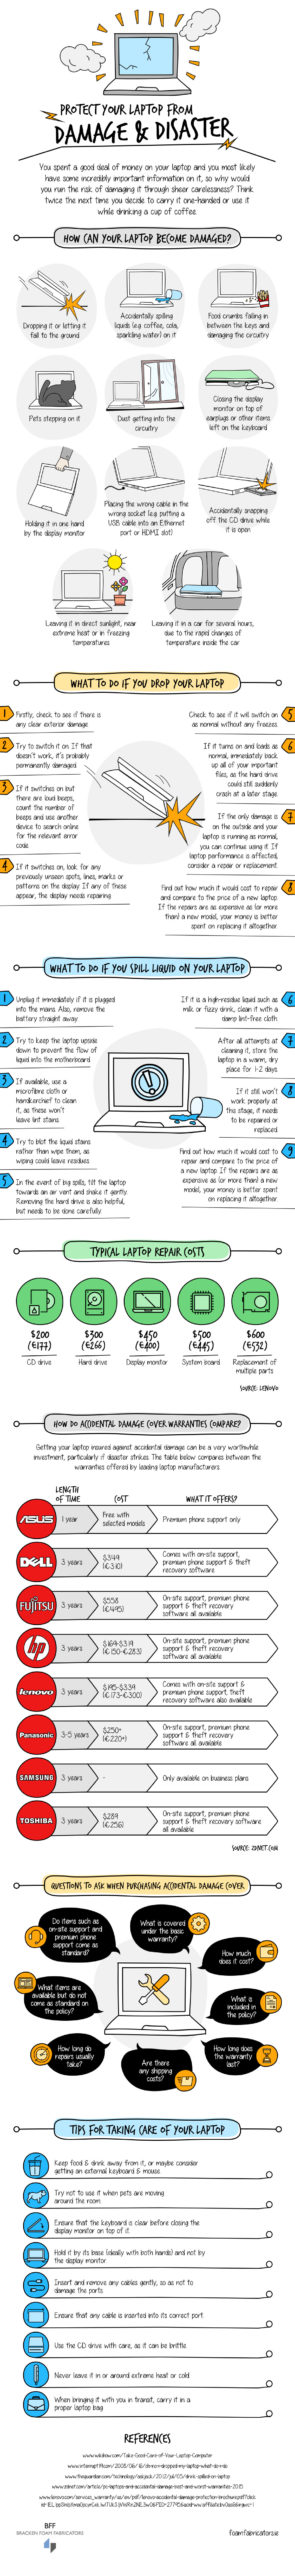 How To Protect Your Laptop from Damage & Disaster – Infographic